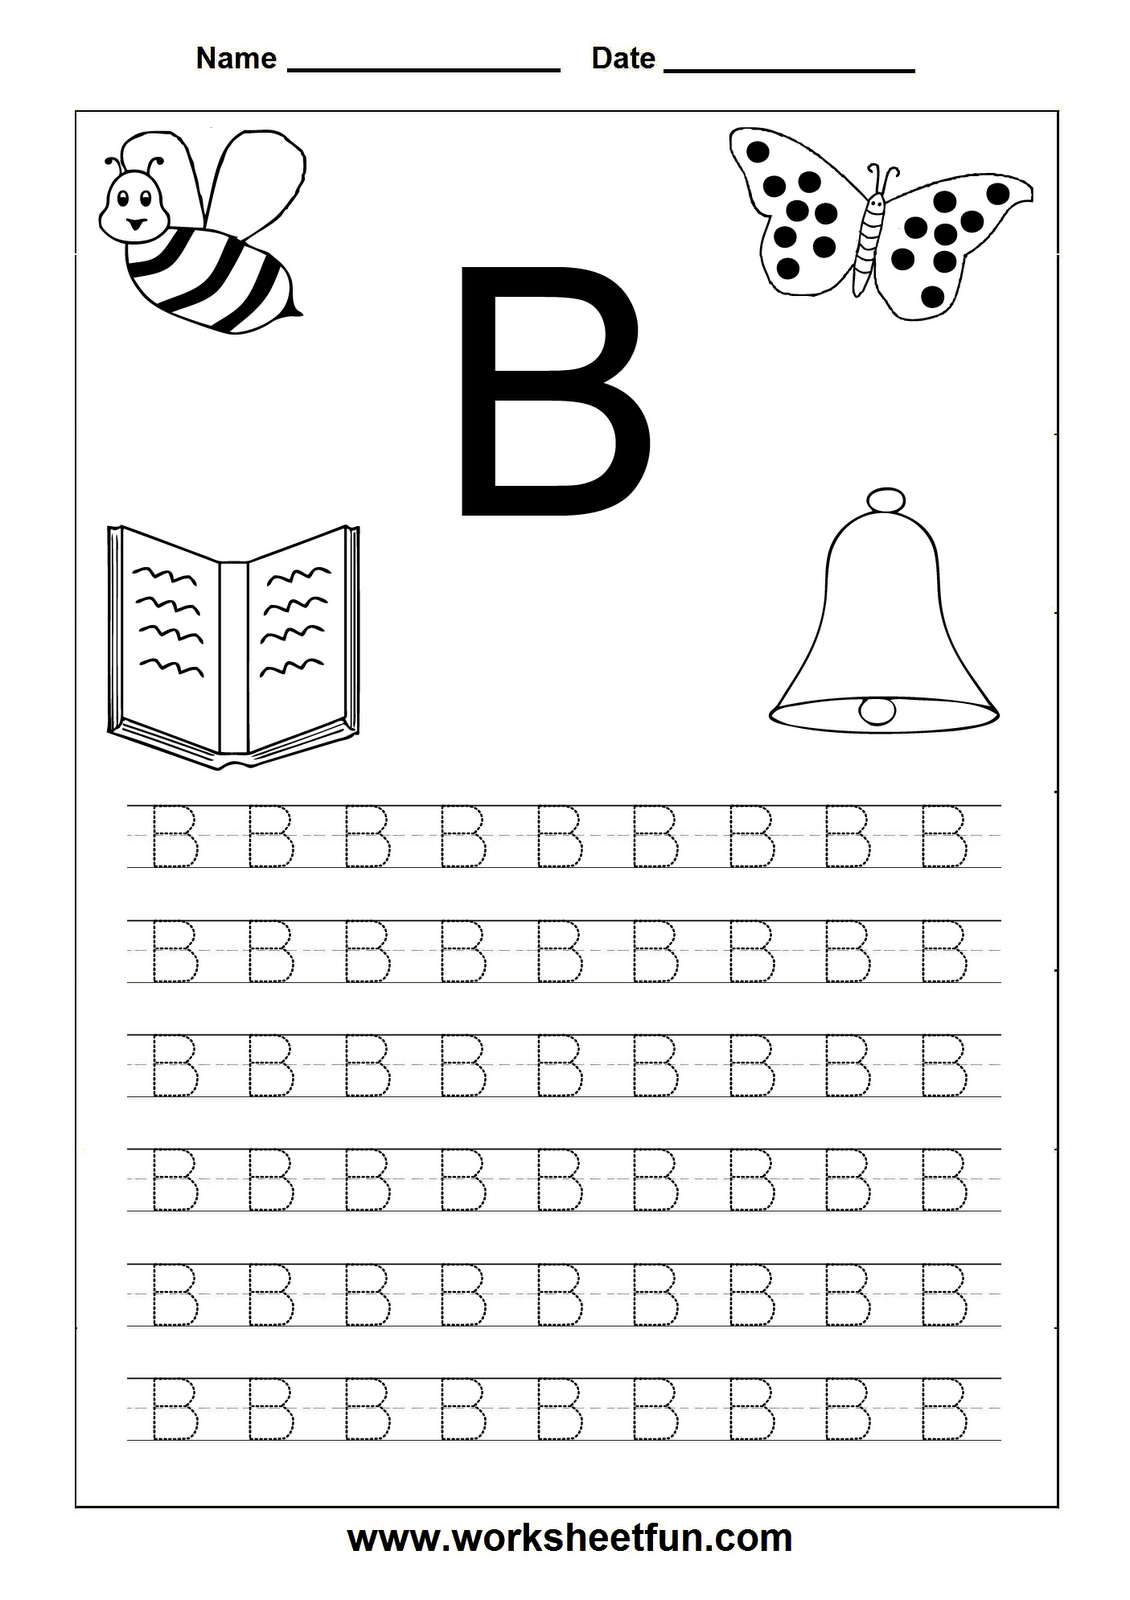 Kindergarten Letter Worksheets : Kindergarten worksheets alphabet letter a